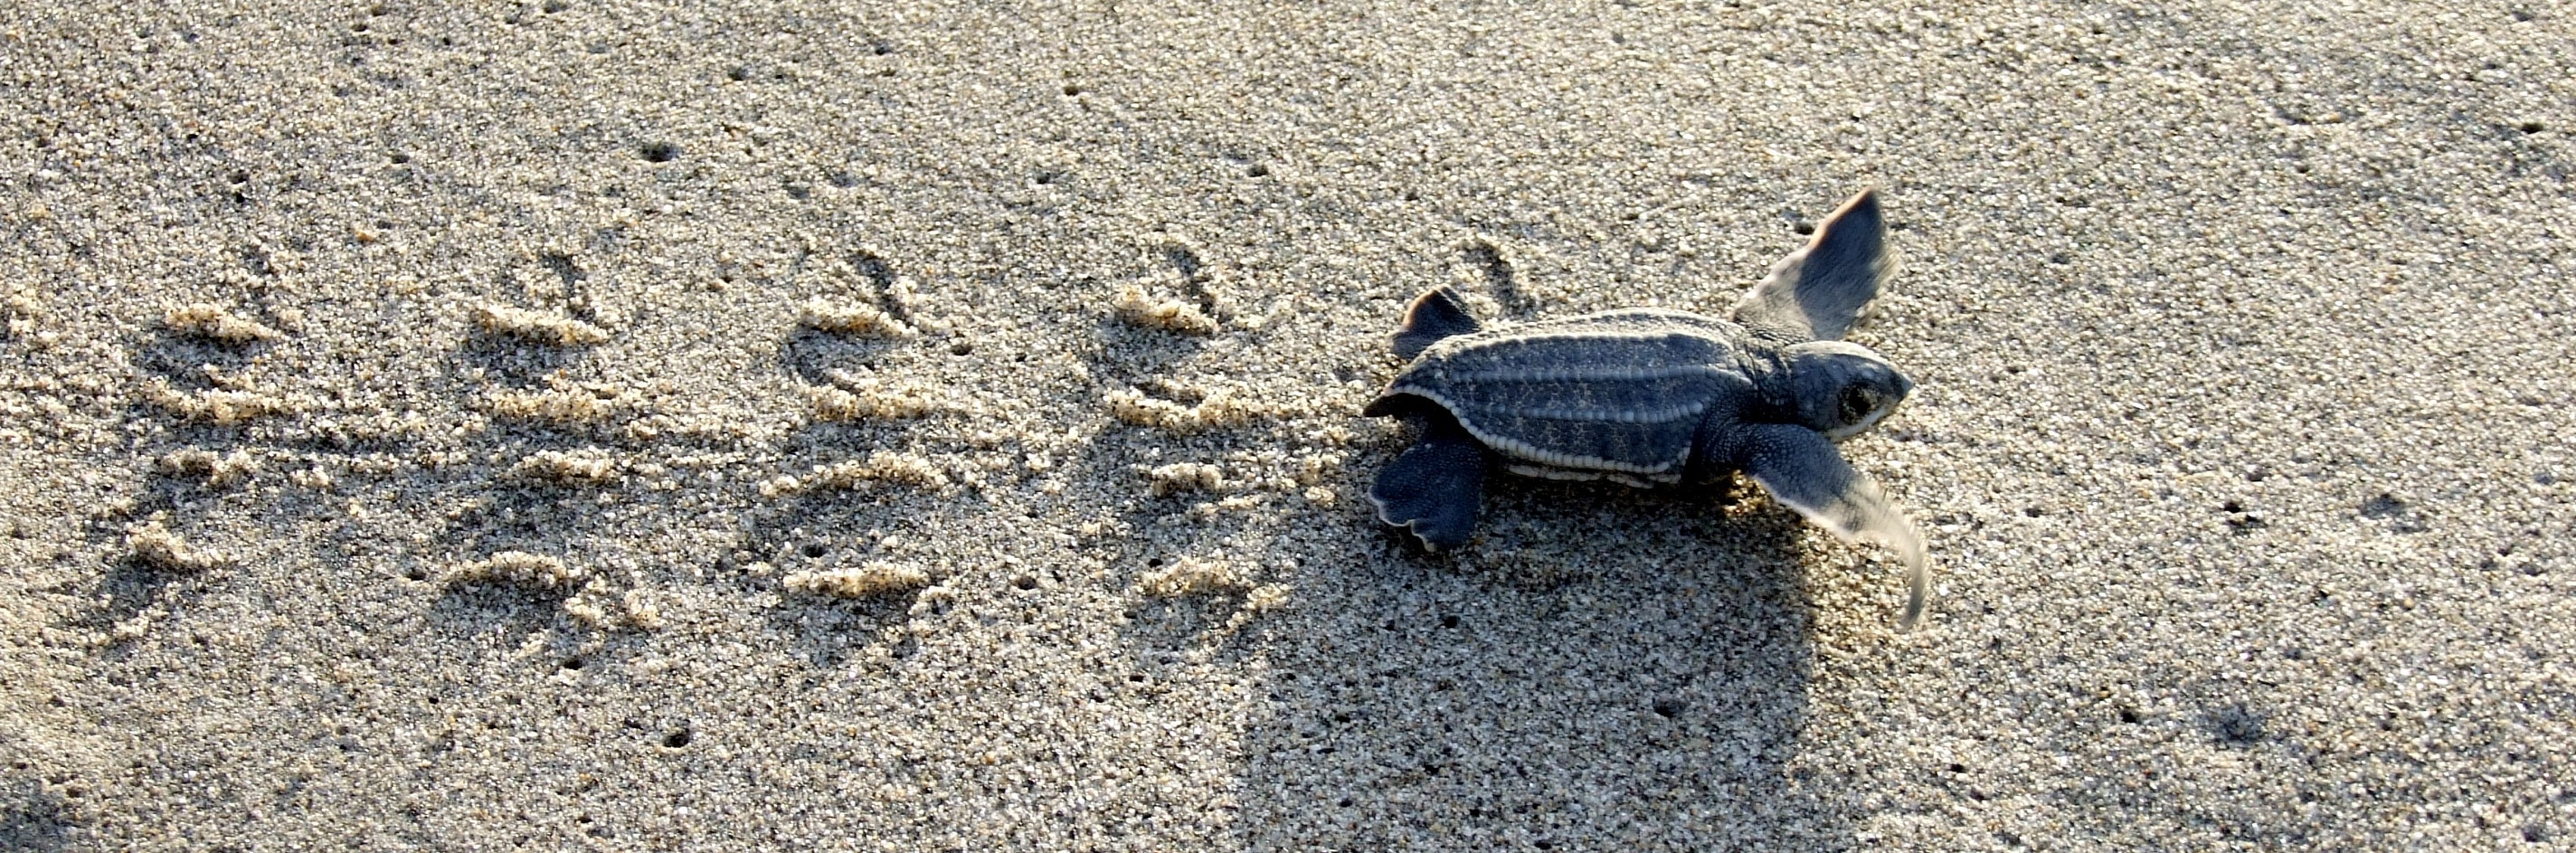 Leatherback TurtleHatchling Making its Way to the Sea